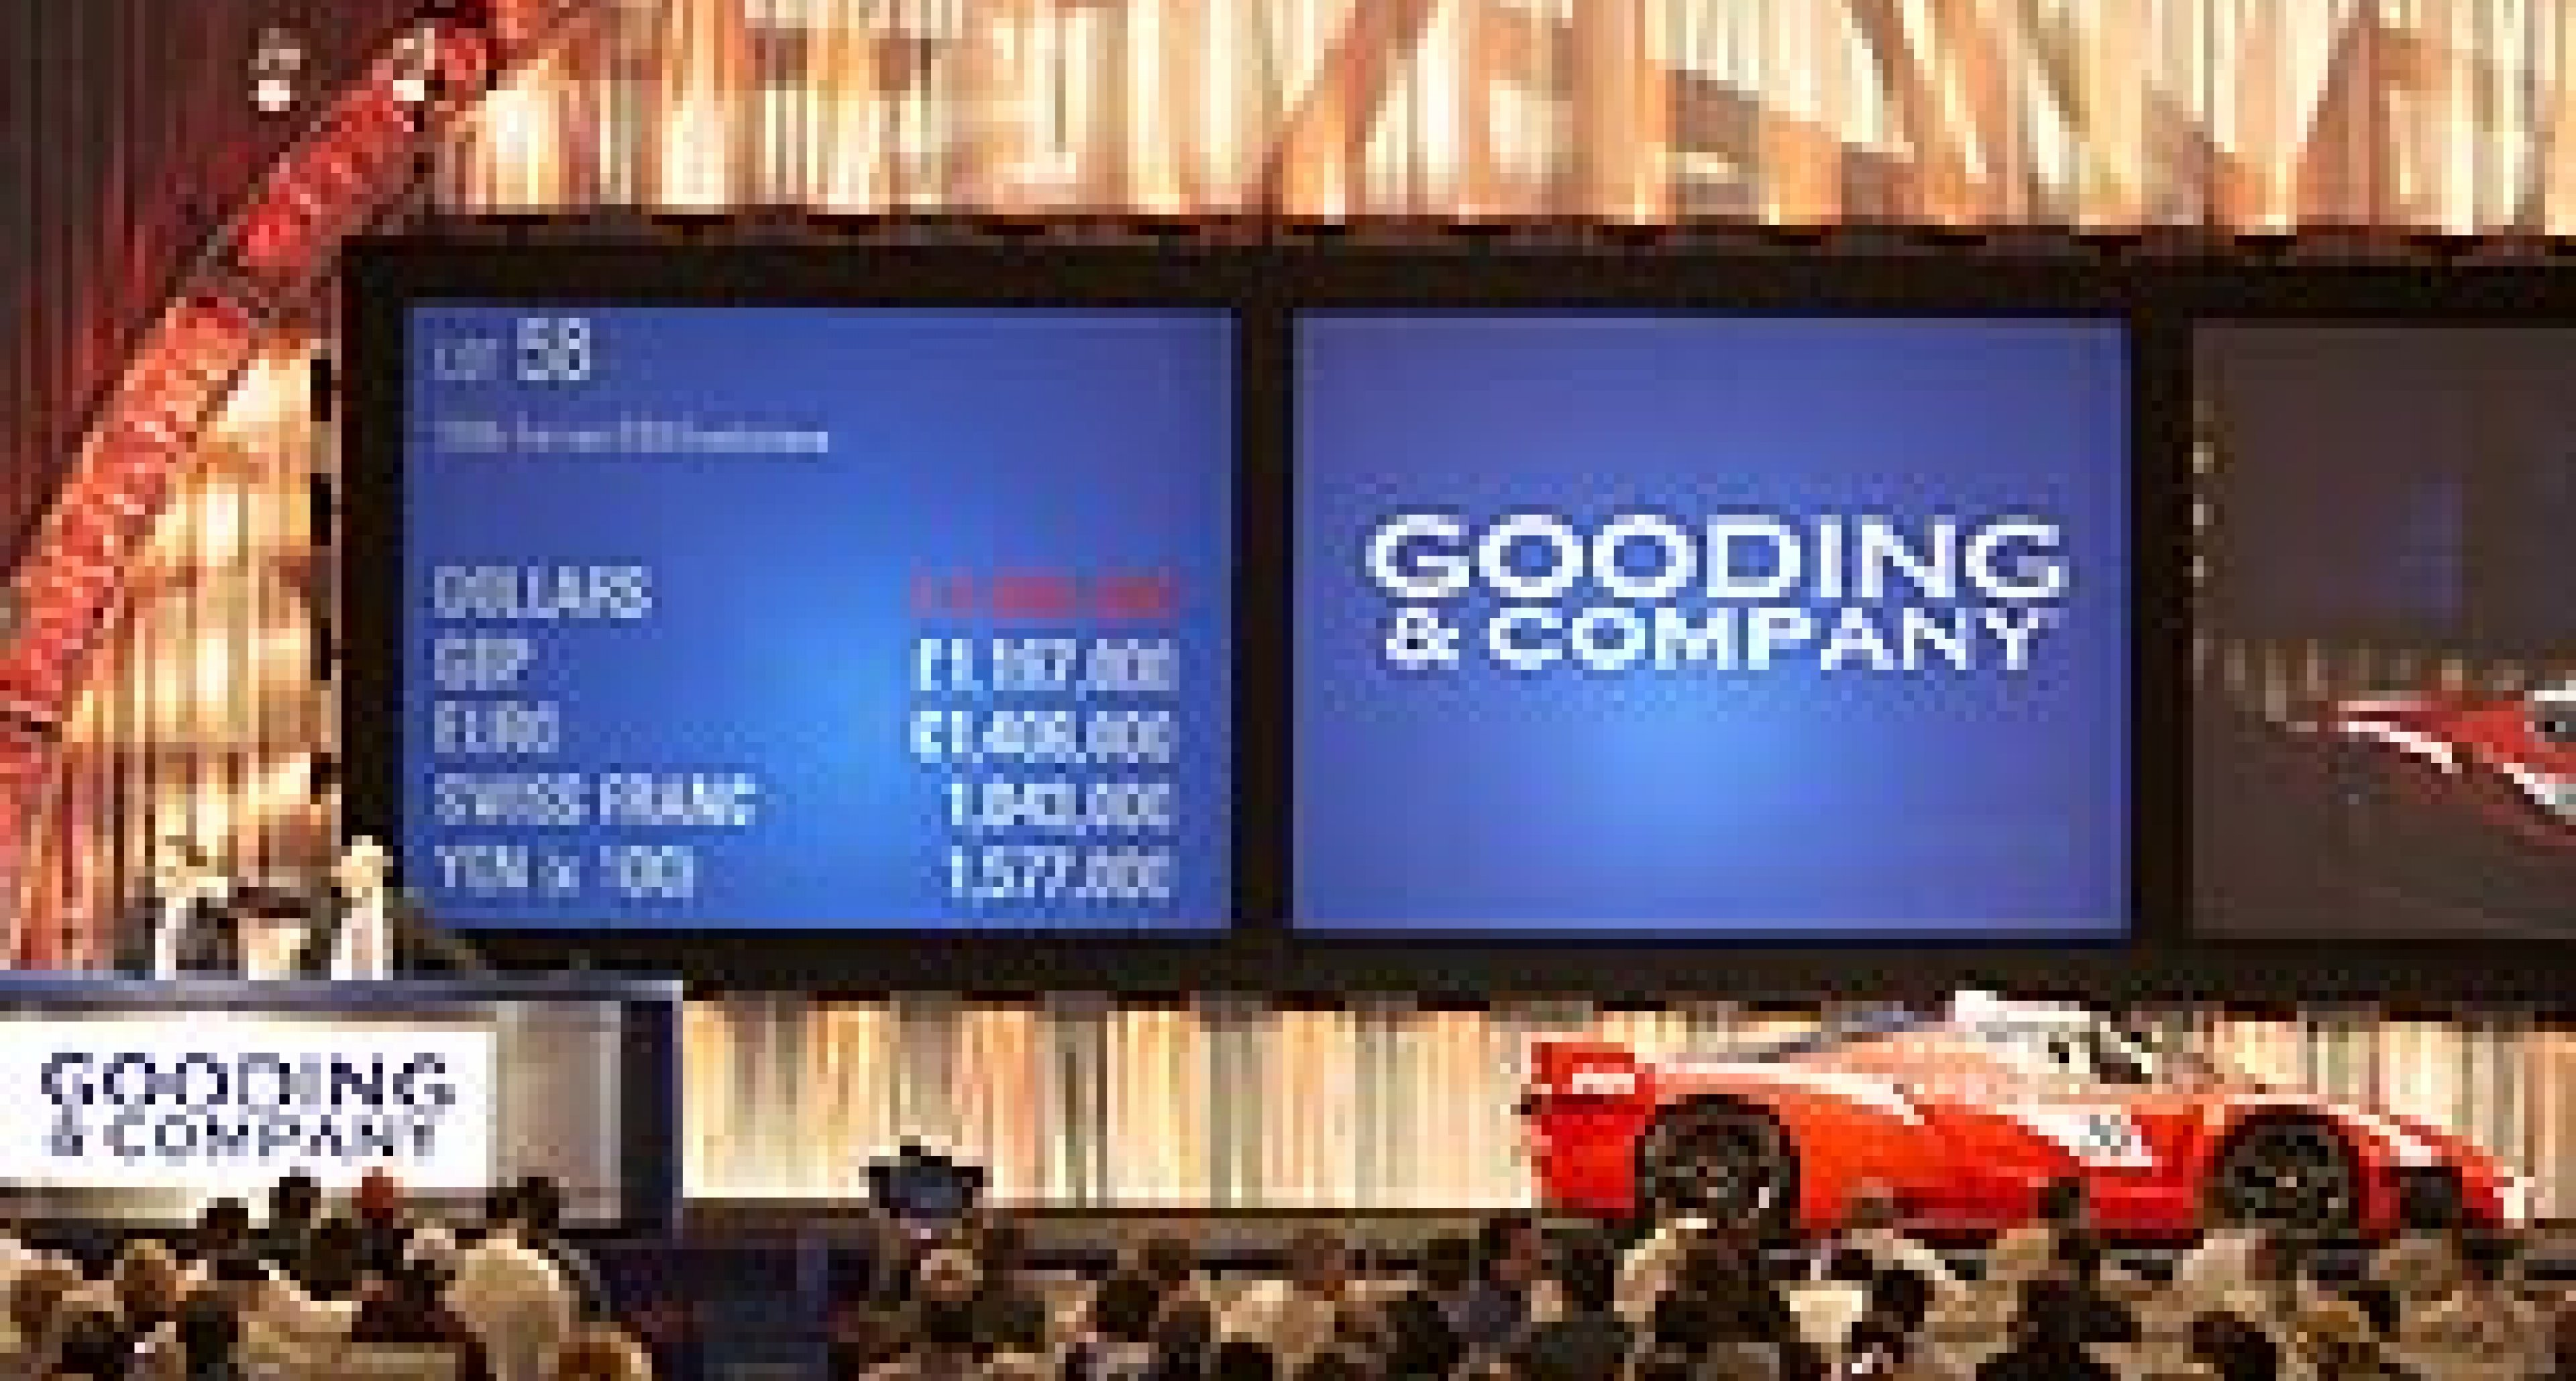 Gooding & Co.: The Scottsdale Auction Jan 21-22 2011 - Review